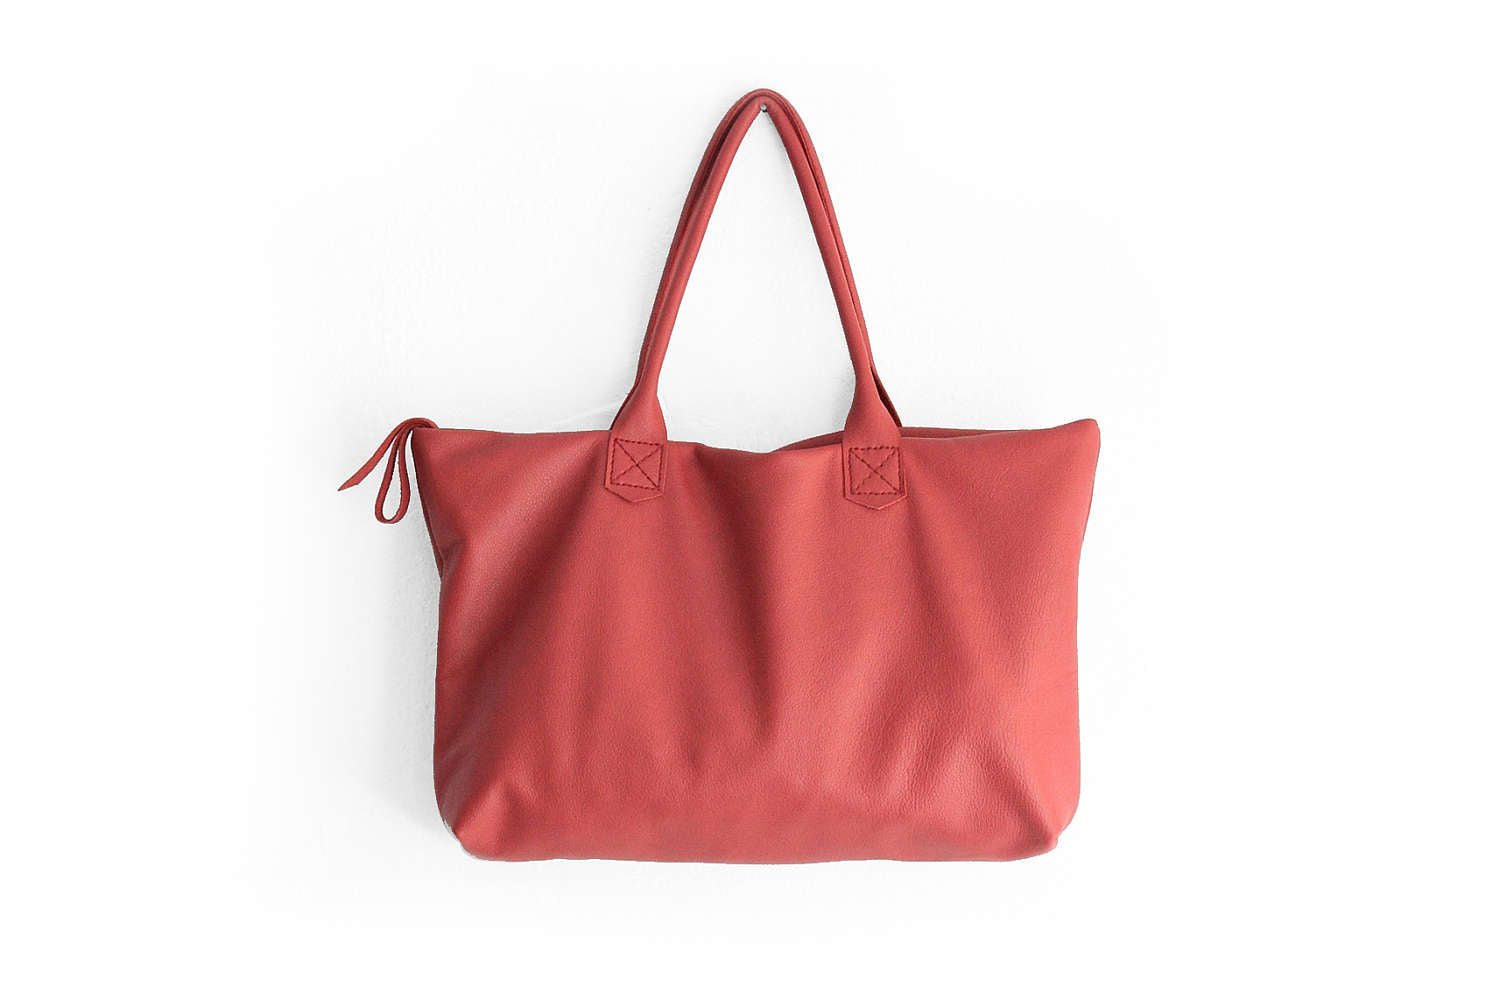 29715c7cec36 Italian Leather Tote Bags - Madly Indian